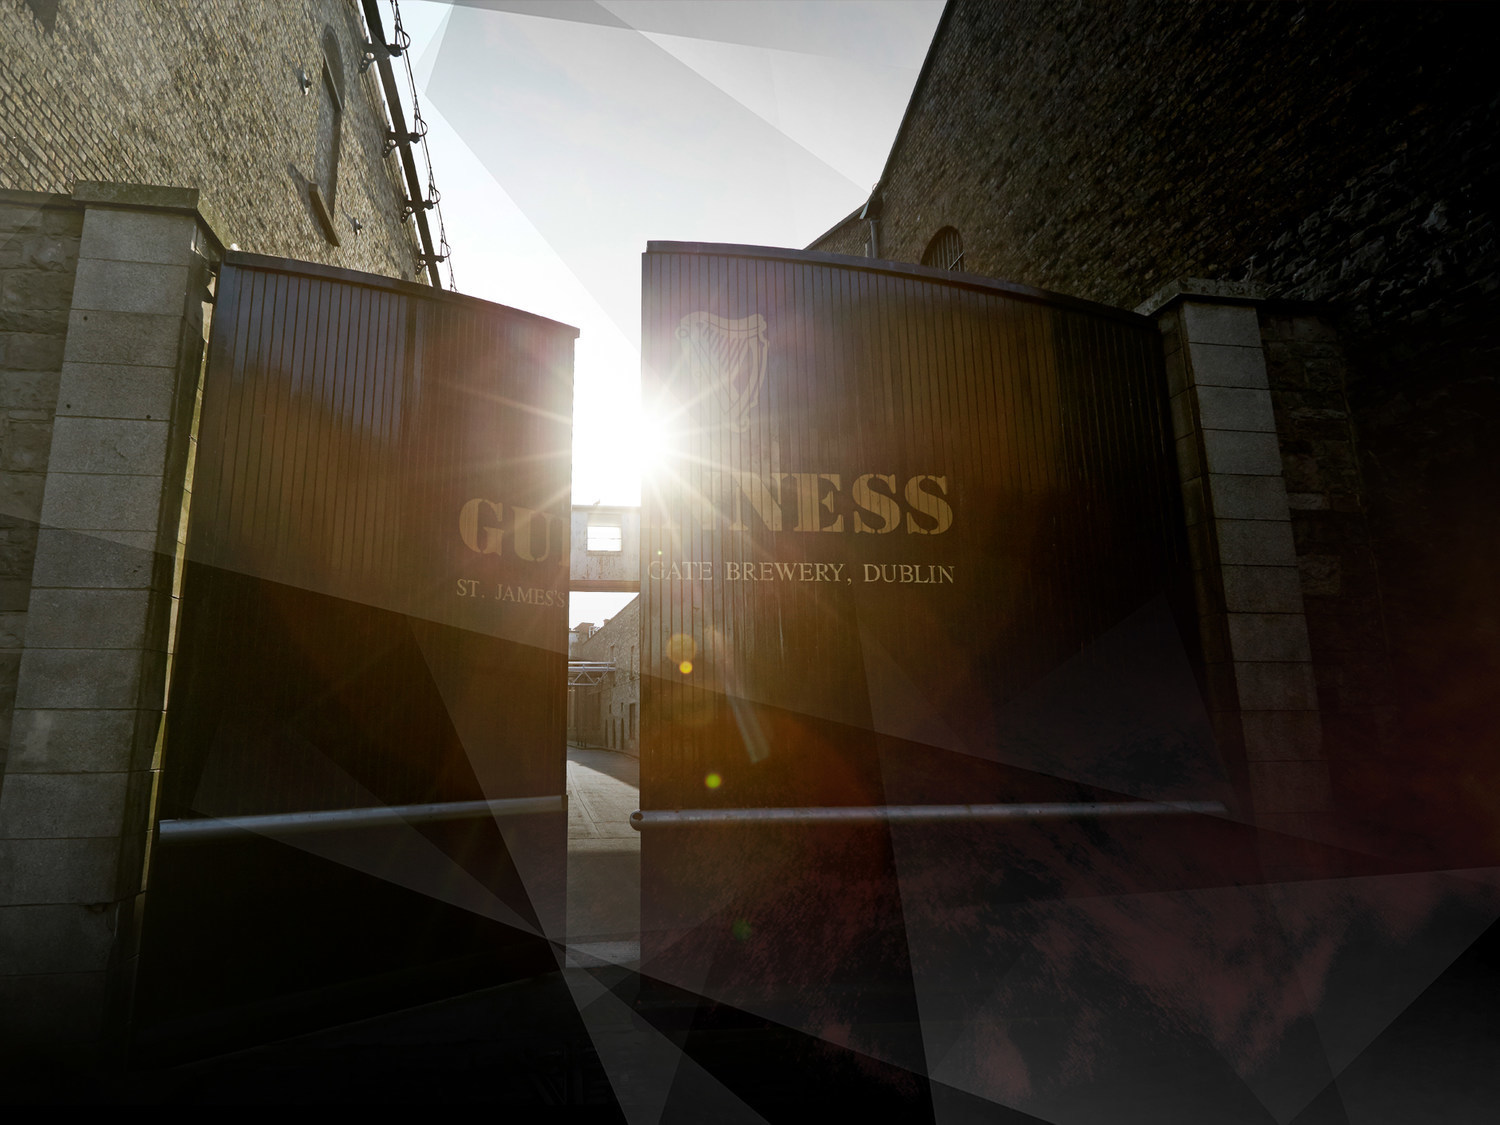 New tour at the Guinness Storehouse